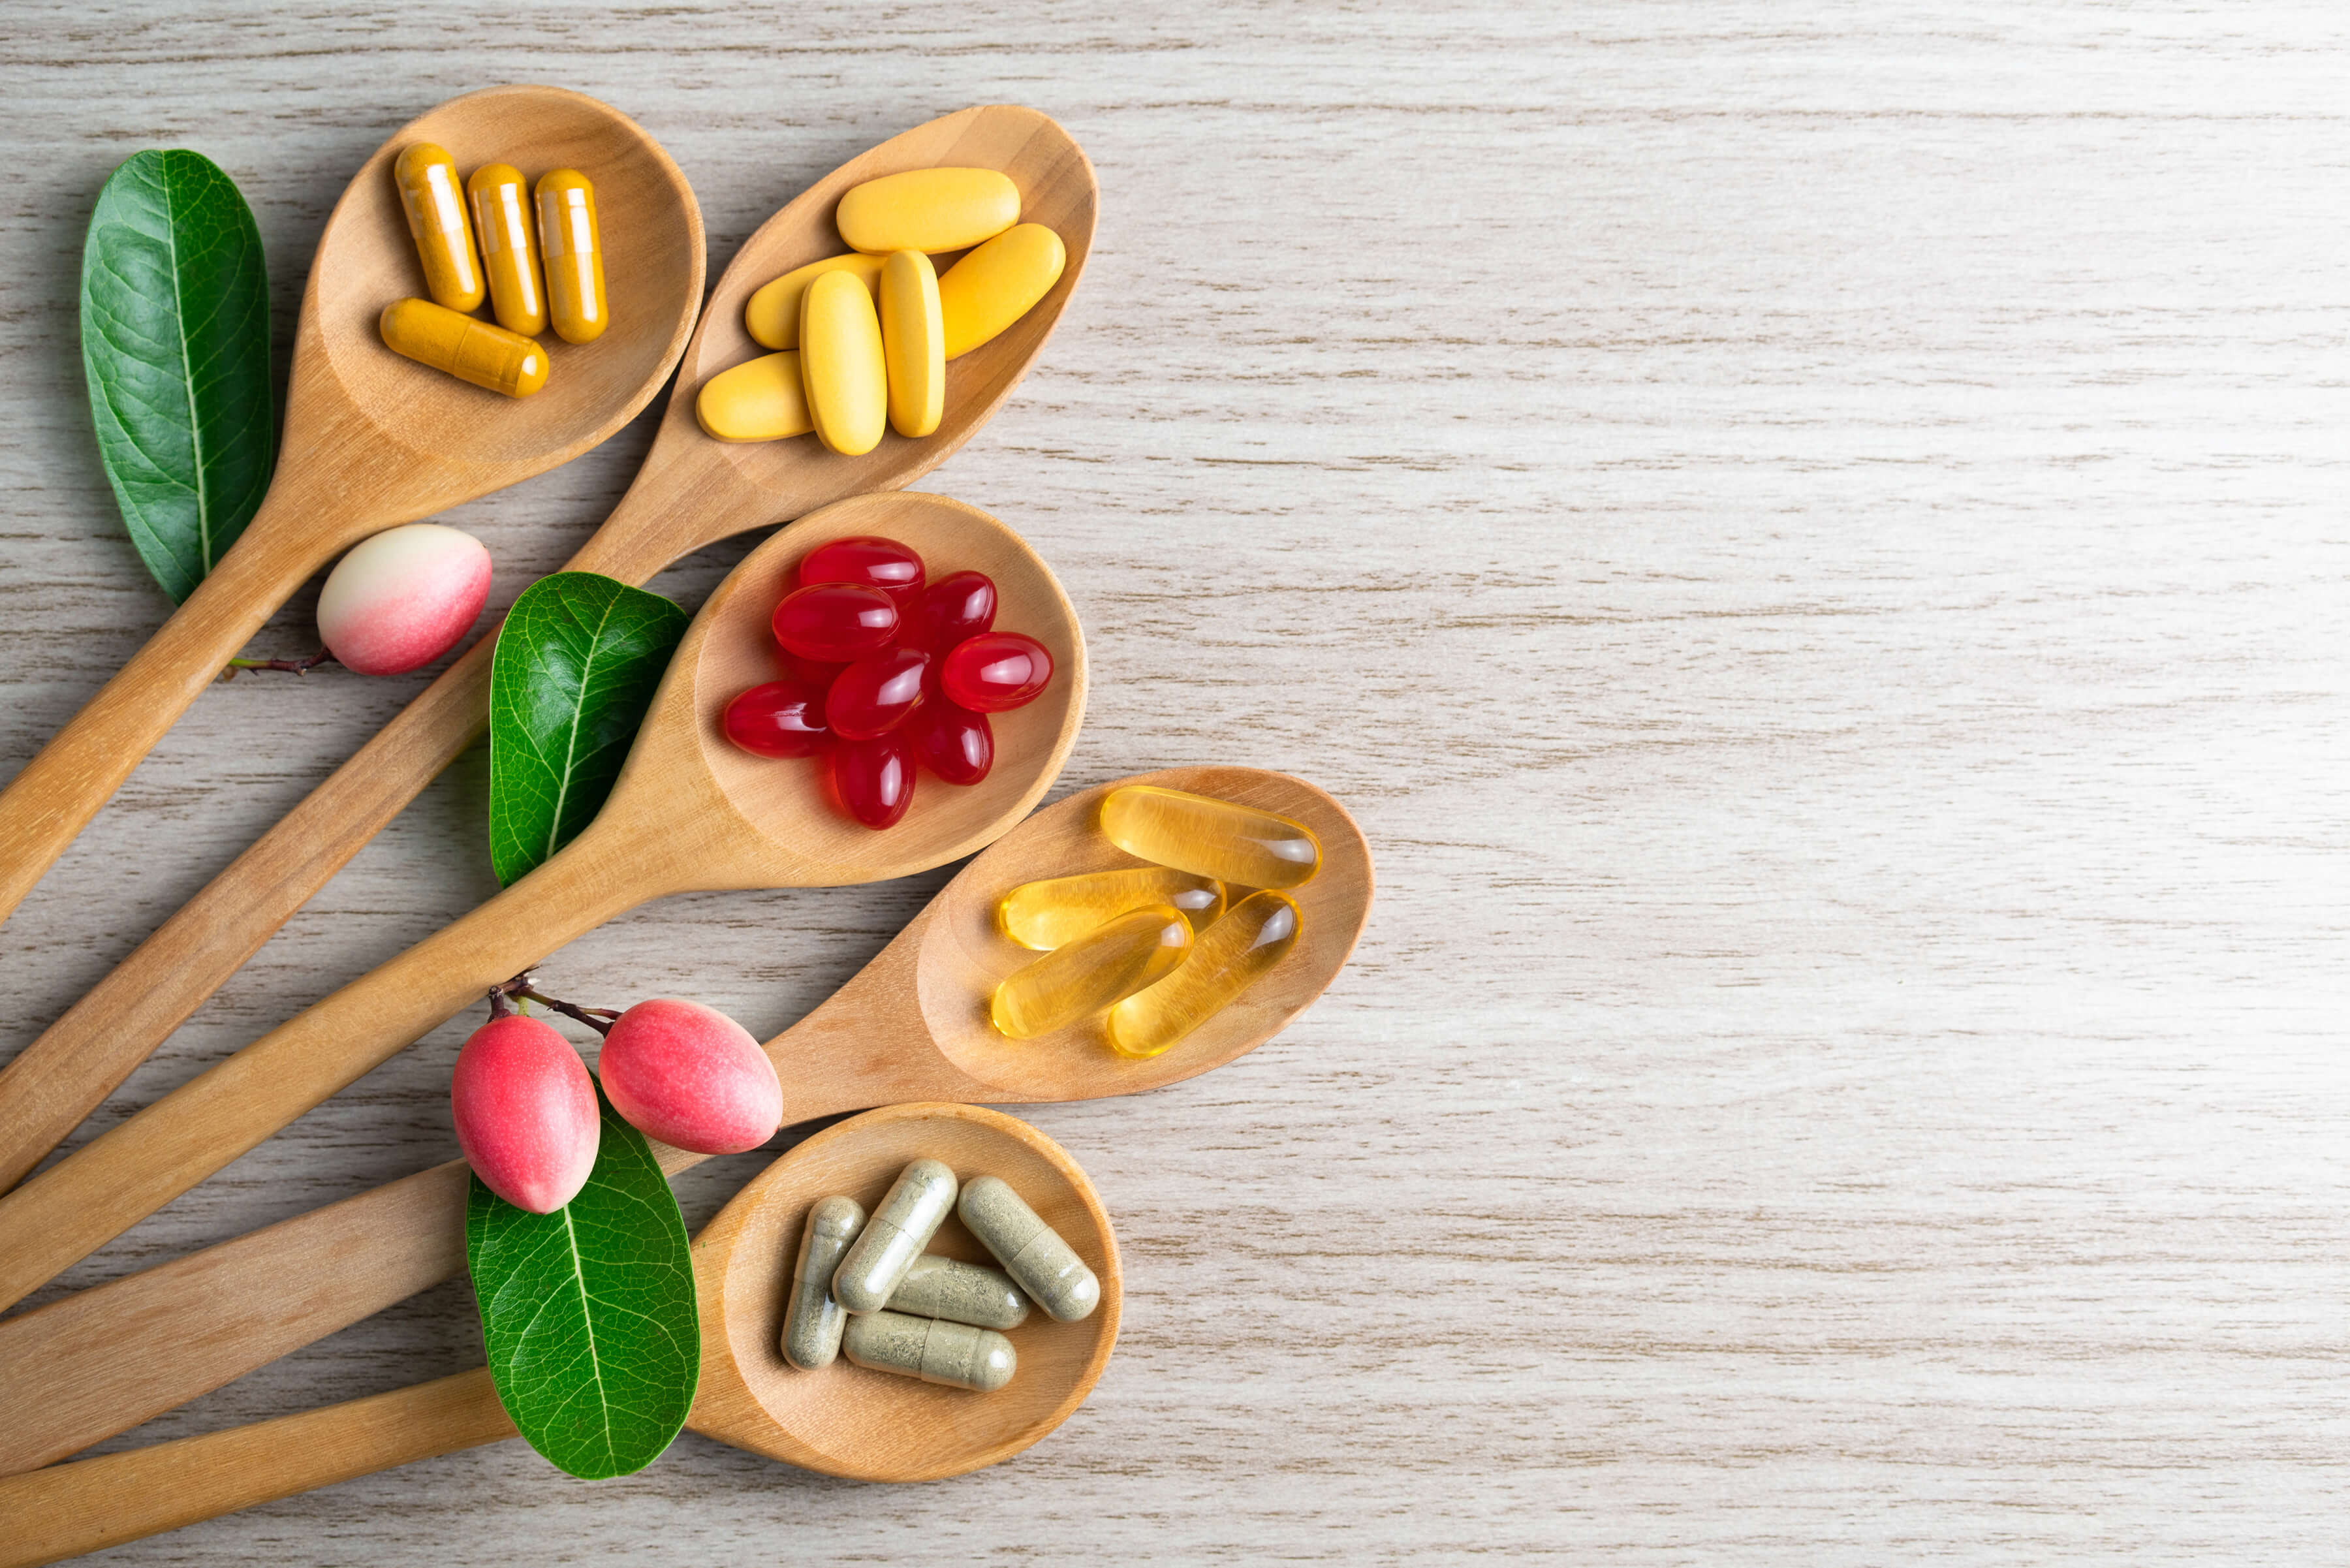 Supplement vitamins on wooden spoons on cooking board